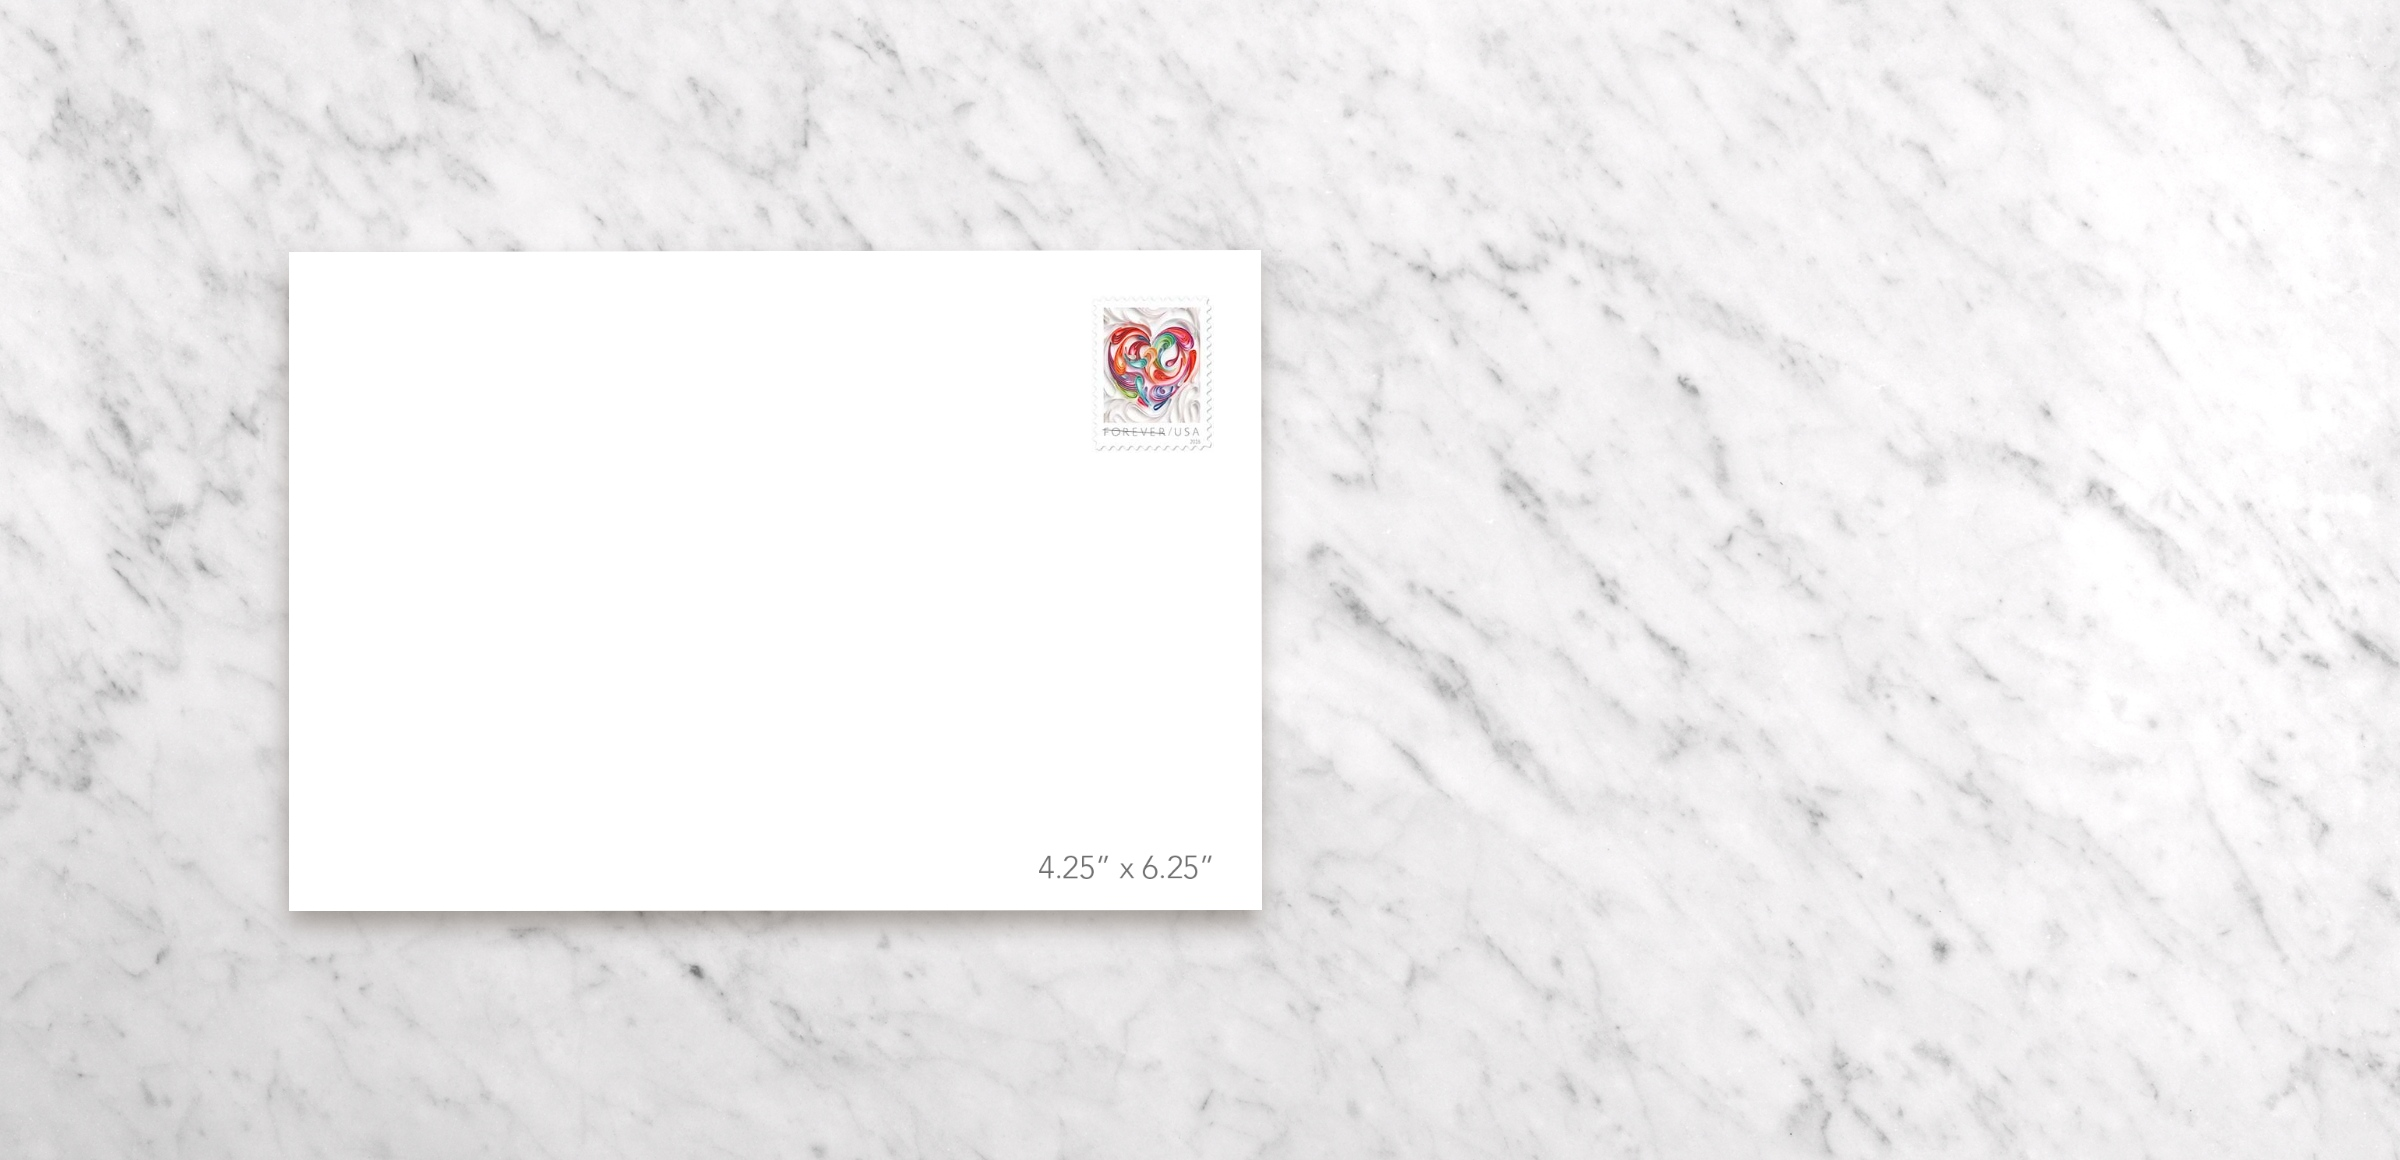 Invitation Included Envelope